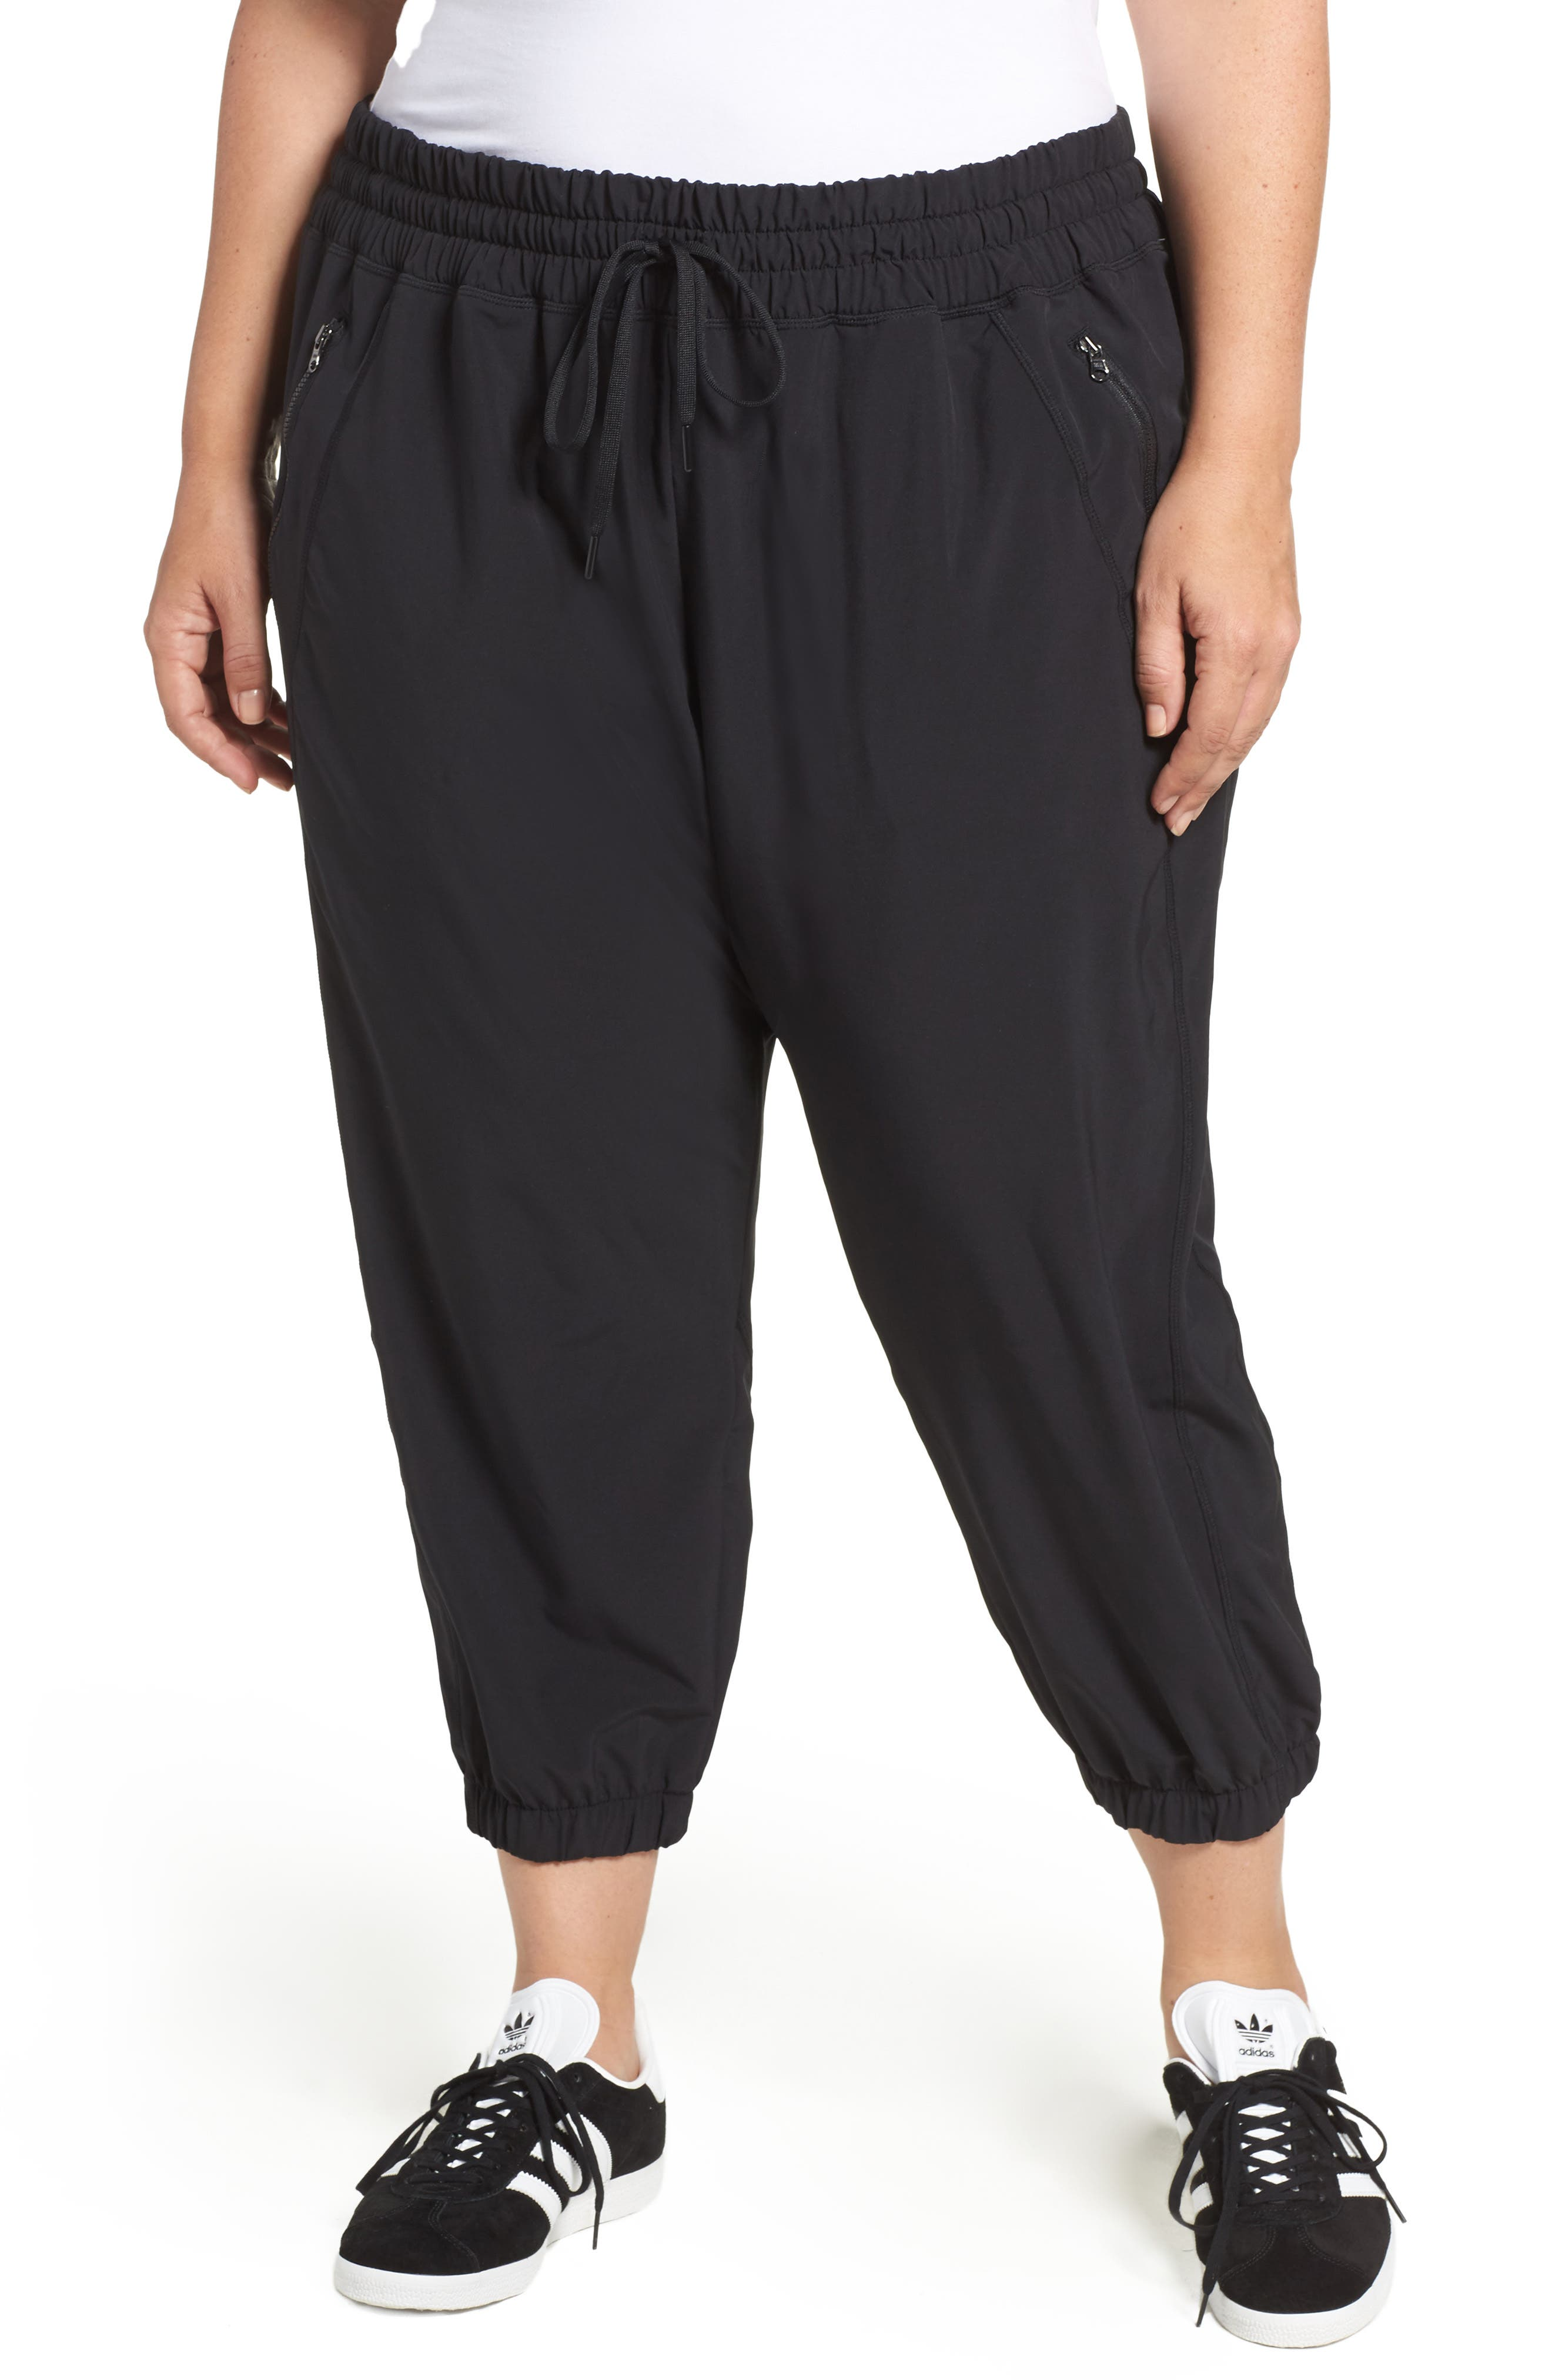 zella plus-size workout clothing for women | nordstrom